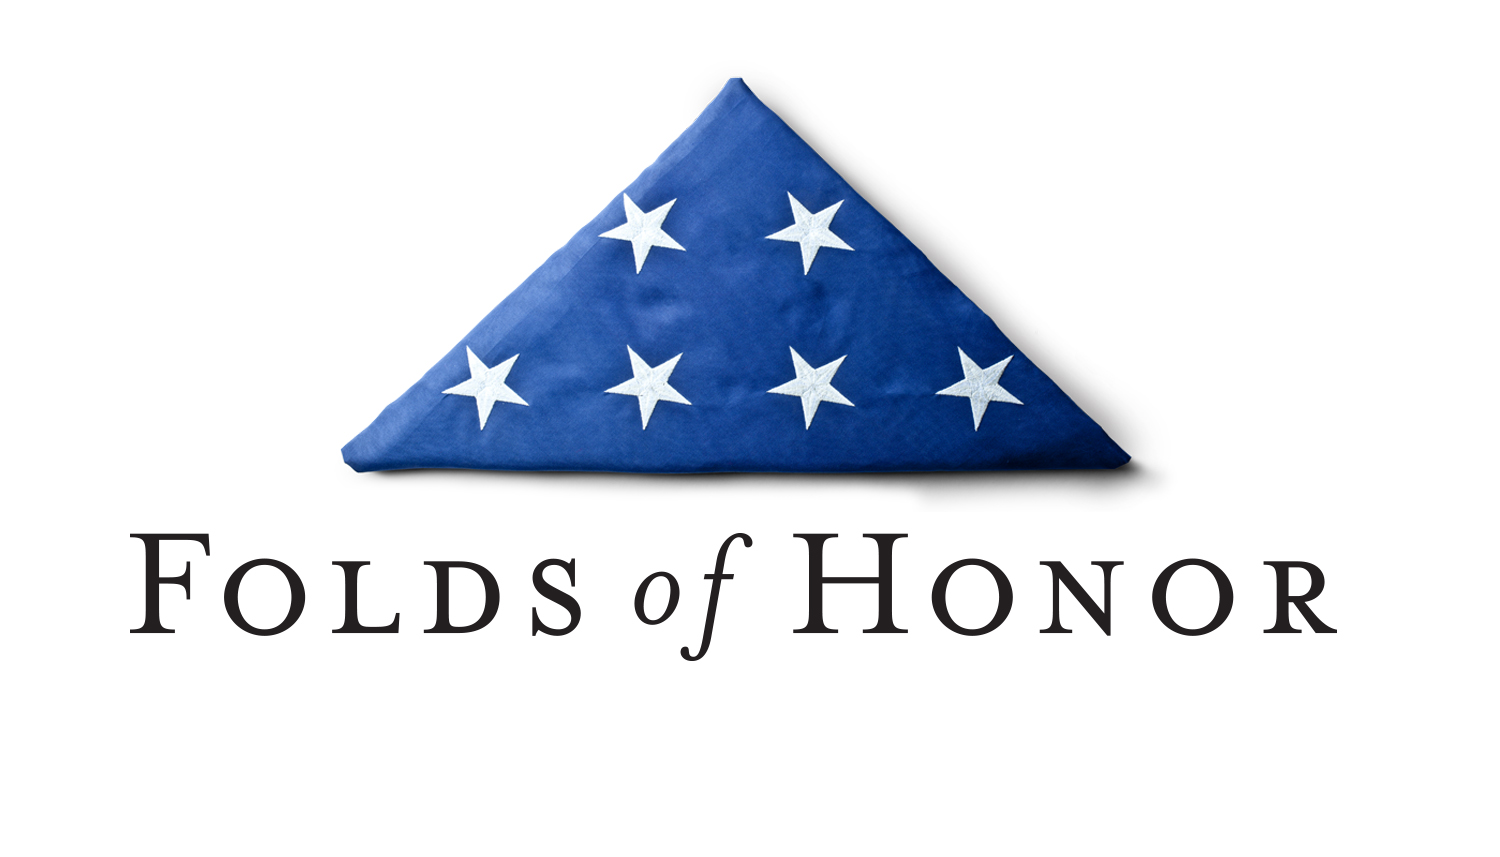 Folds_of_Honor_4C_2014_raster.jpg